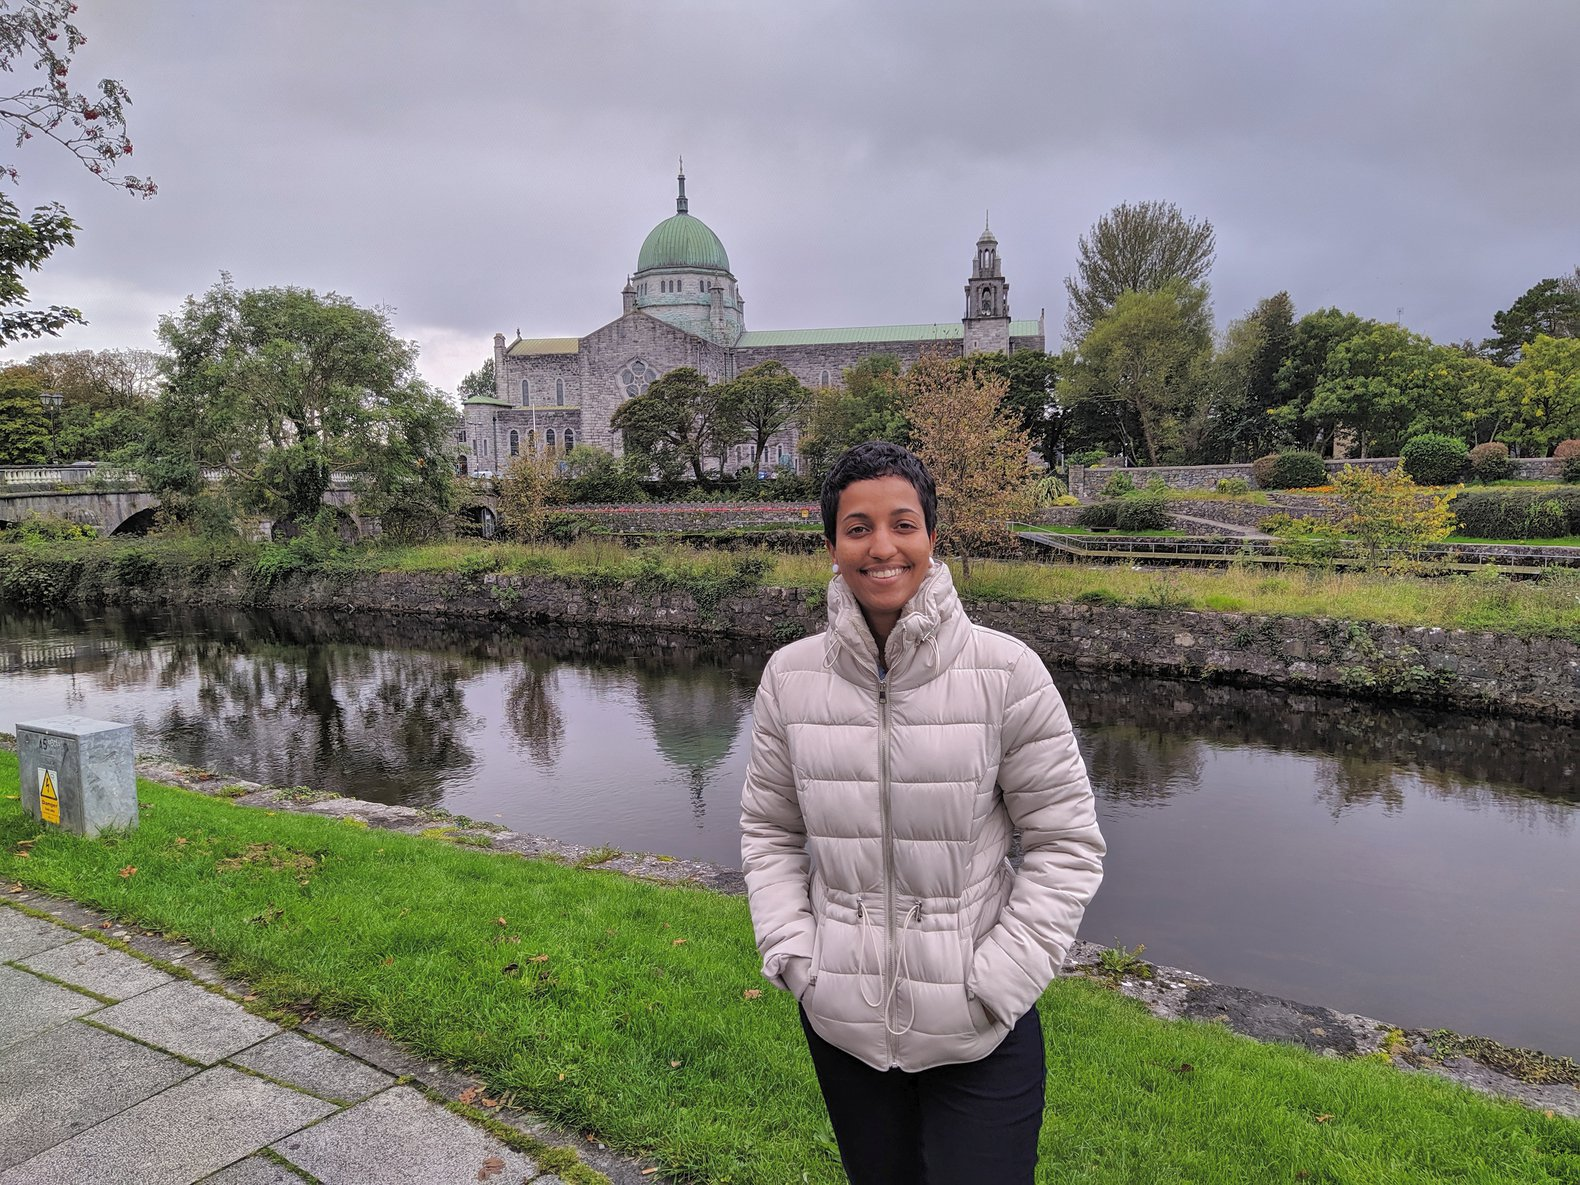 Galway cathedral in the background